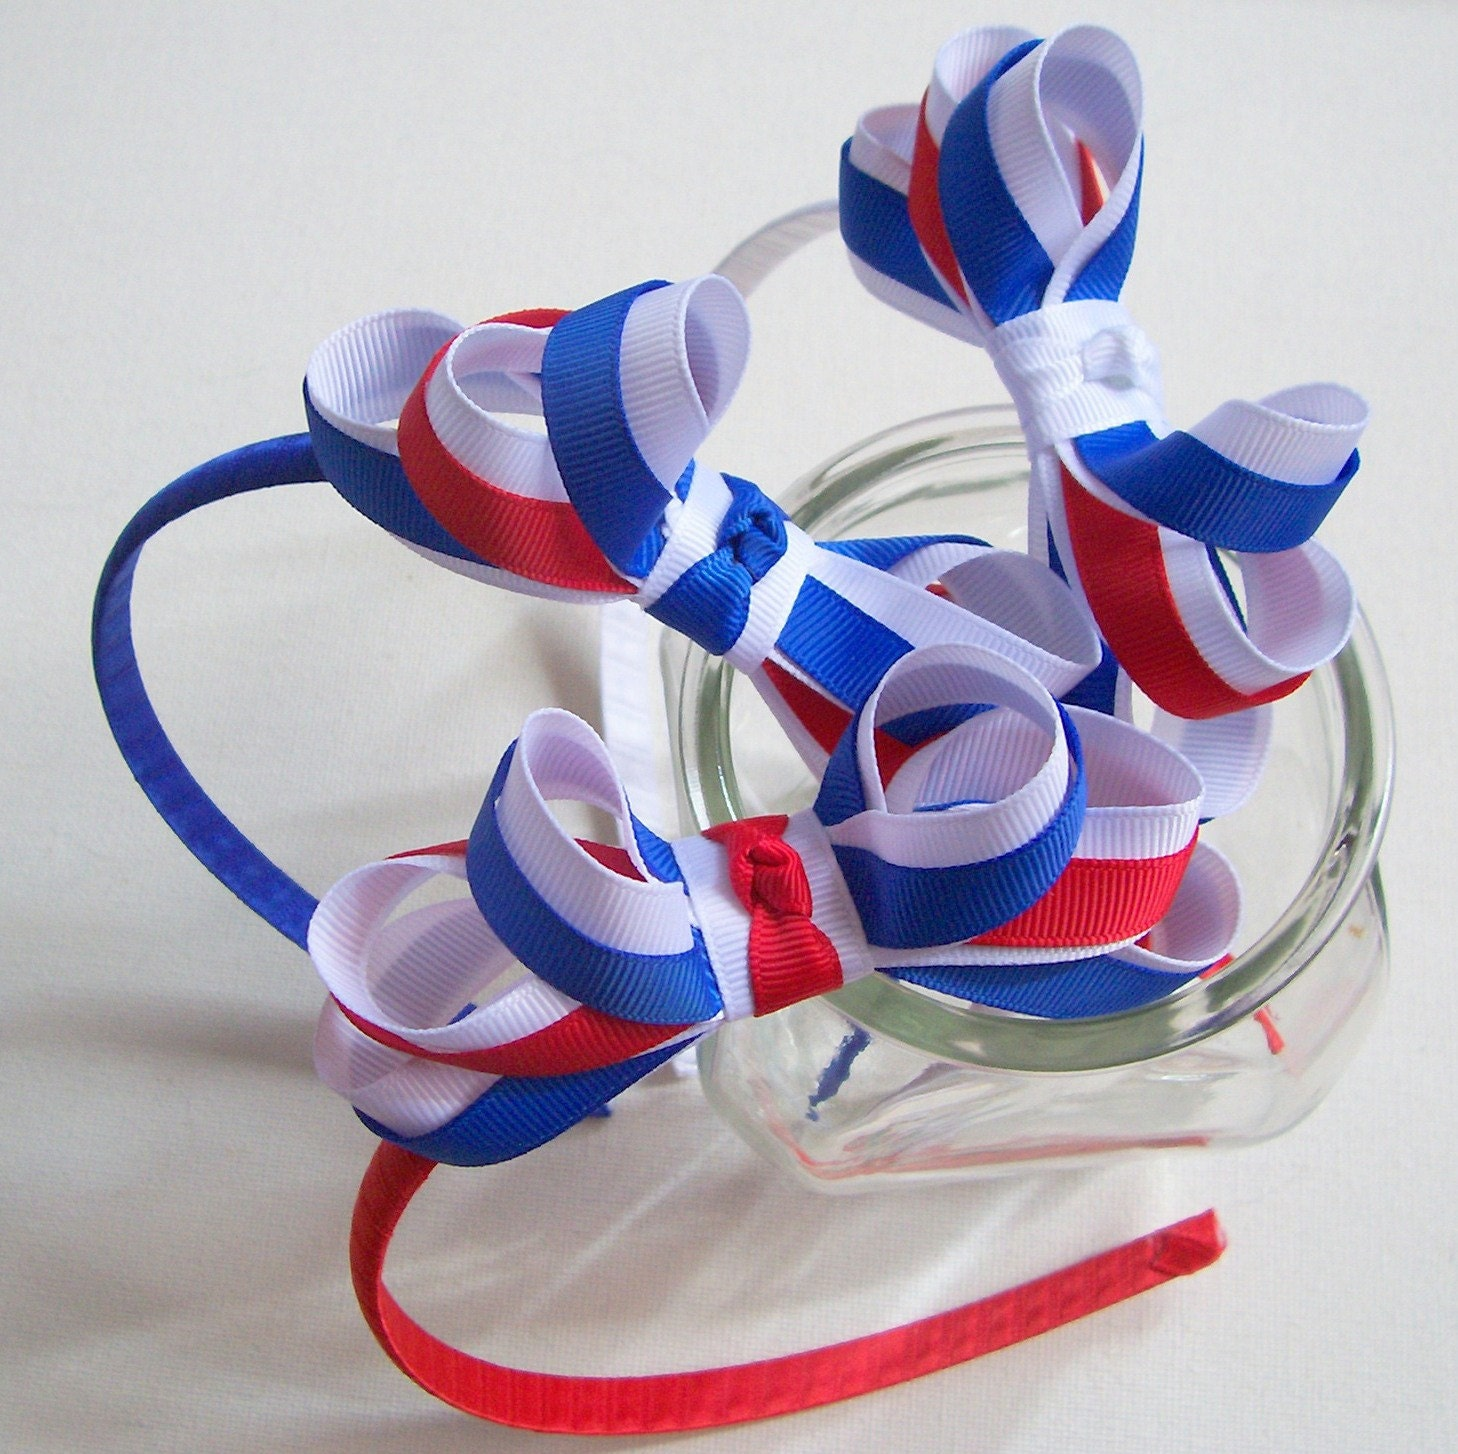 Patriotic Forth of July Headband - Red White & Blue Loopy Bow - IdleFingers